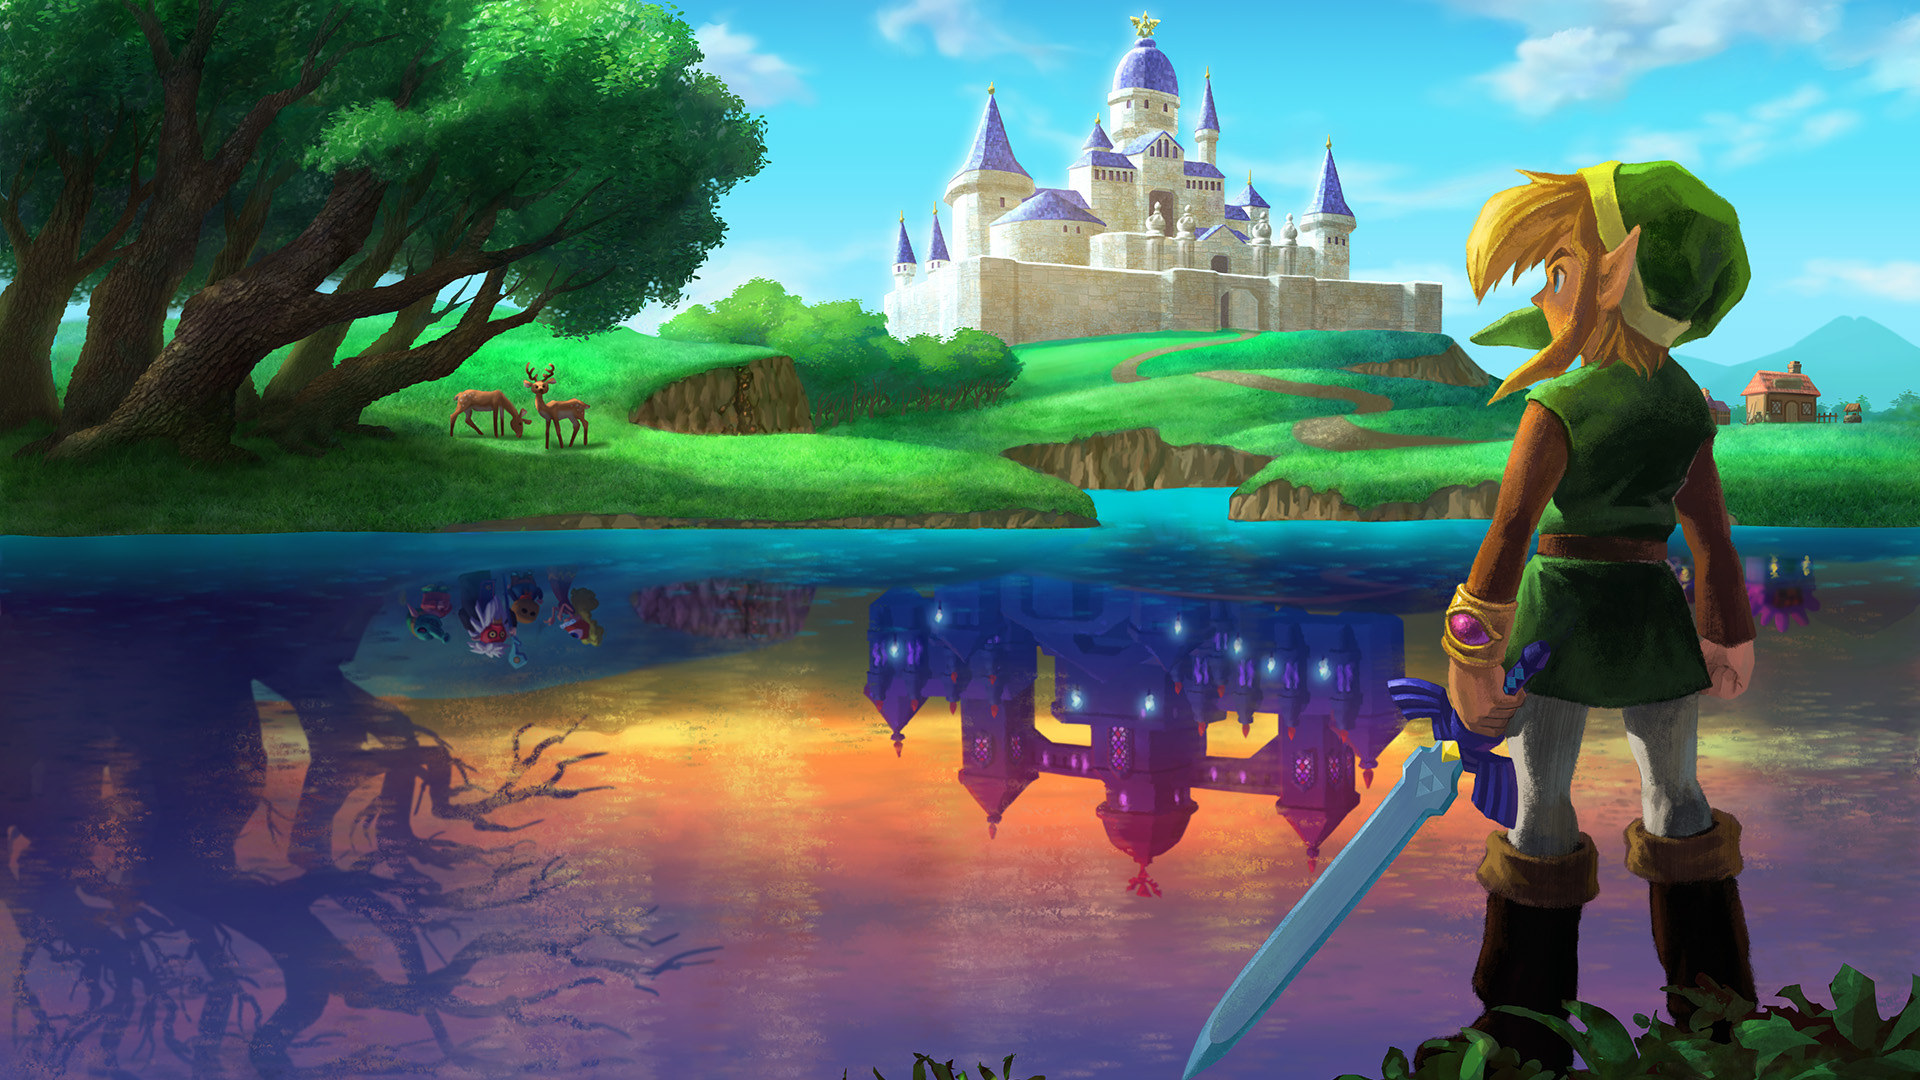 comzeldathe legend of zelda a link between worlds hd wallpaperjpg 1920x1080